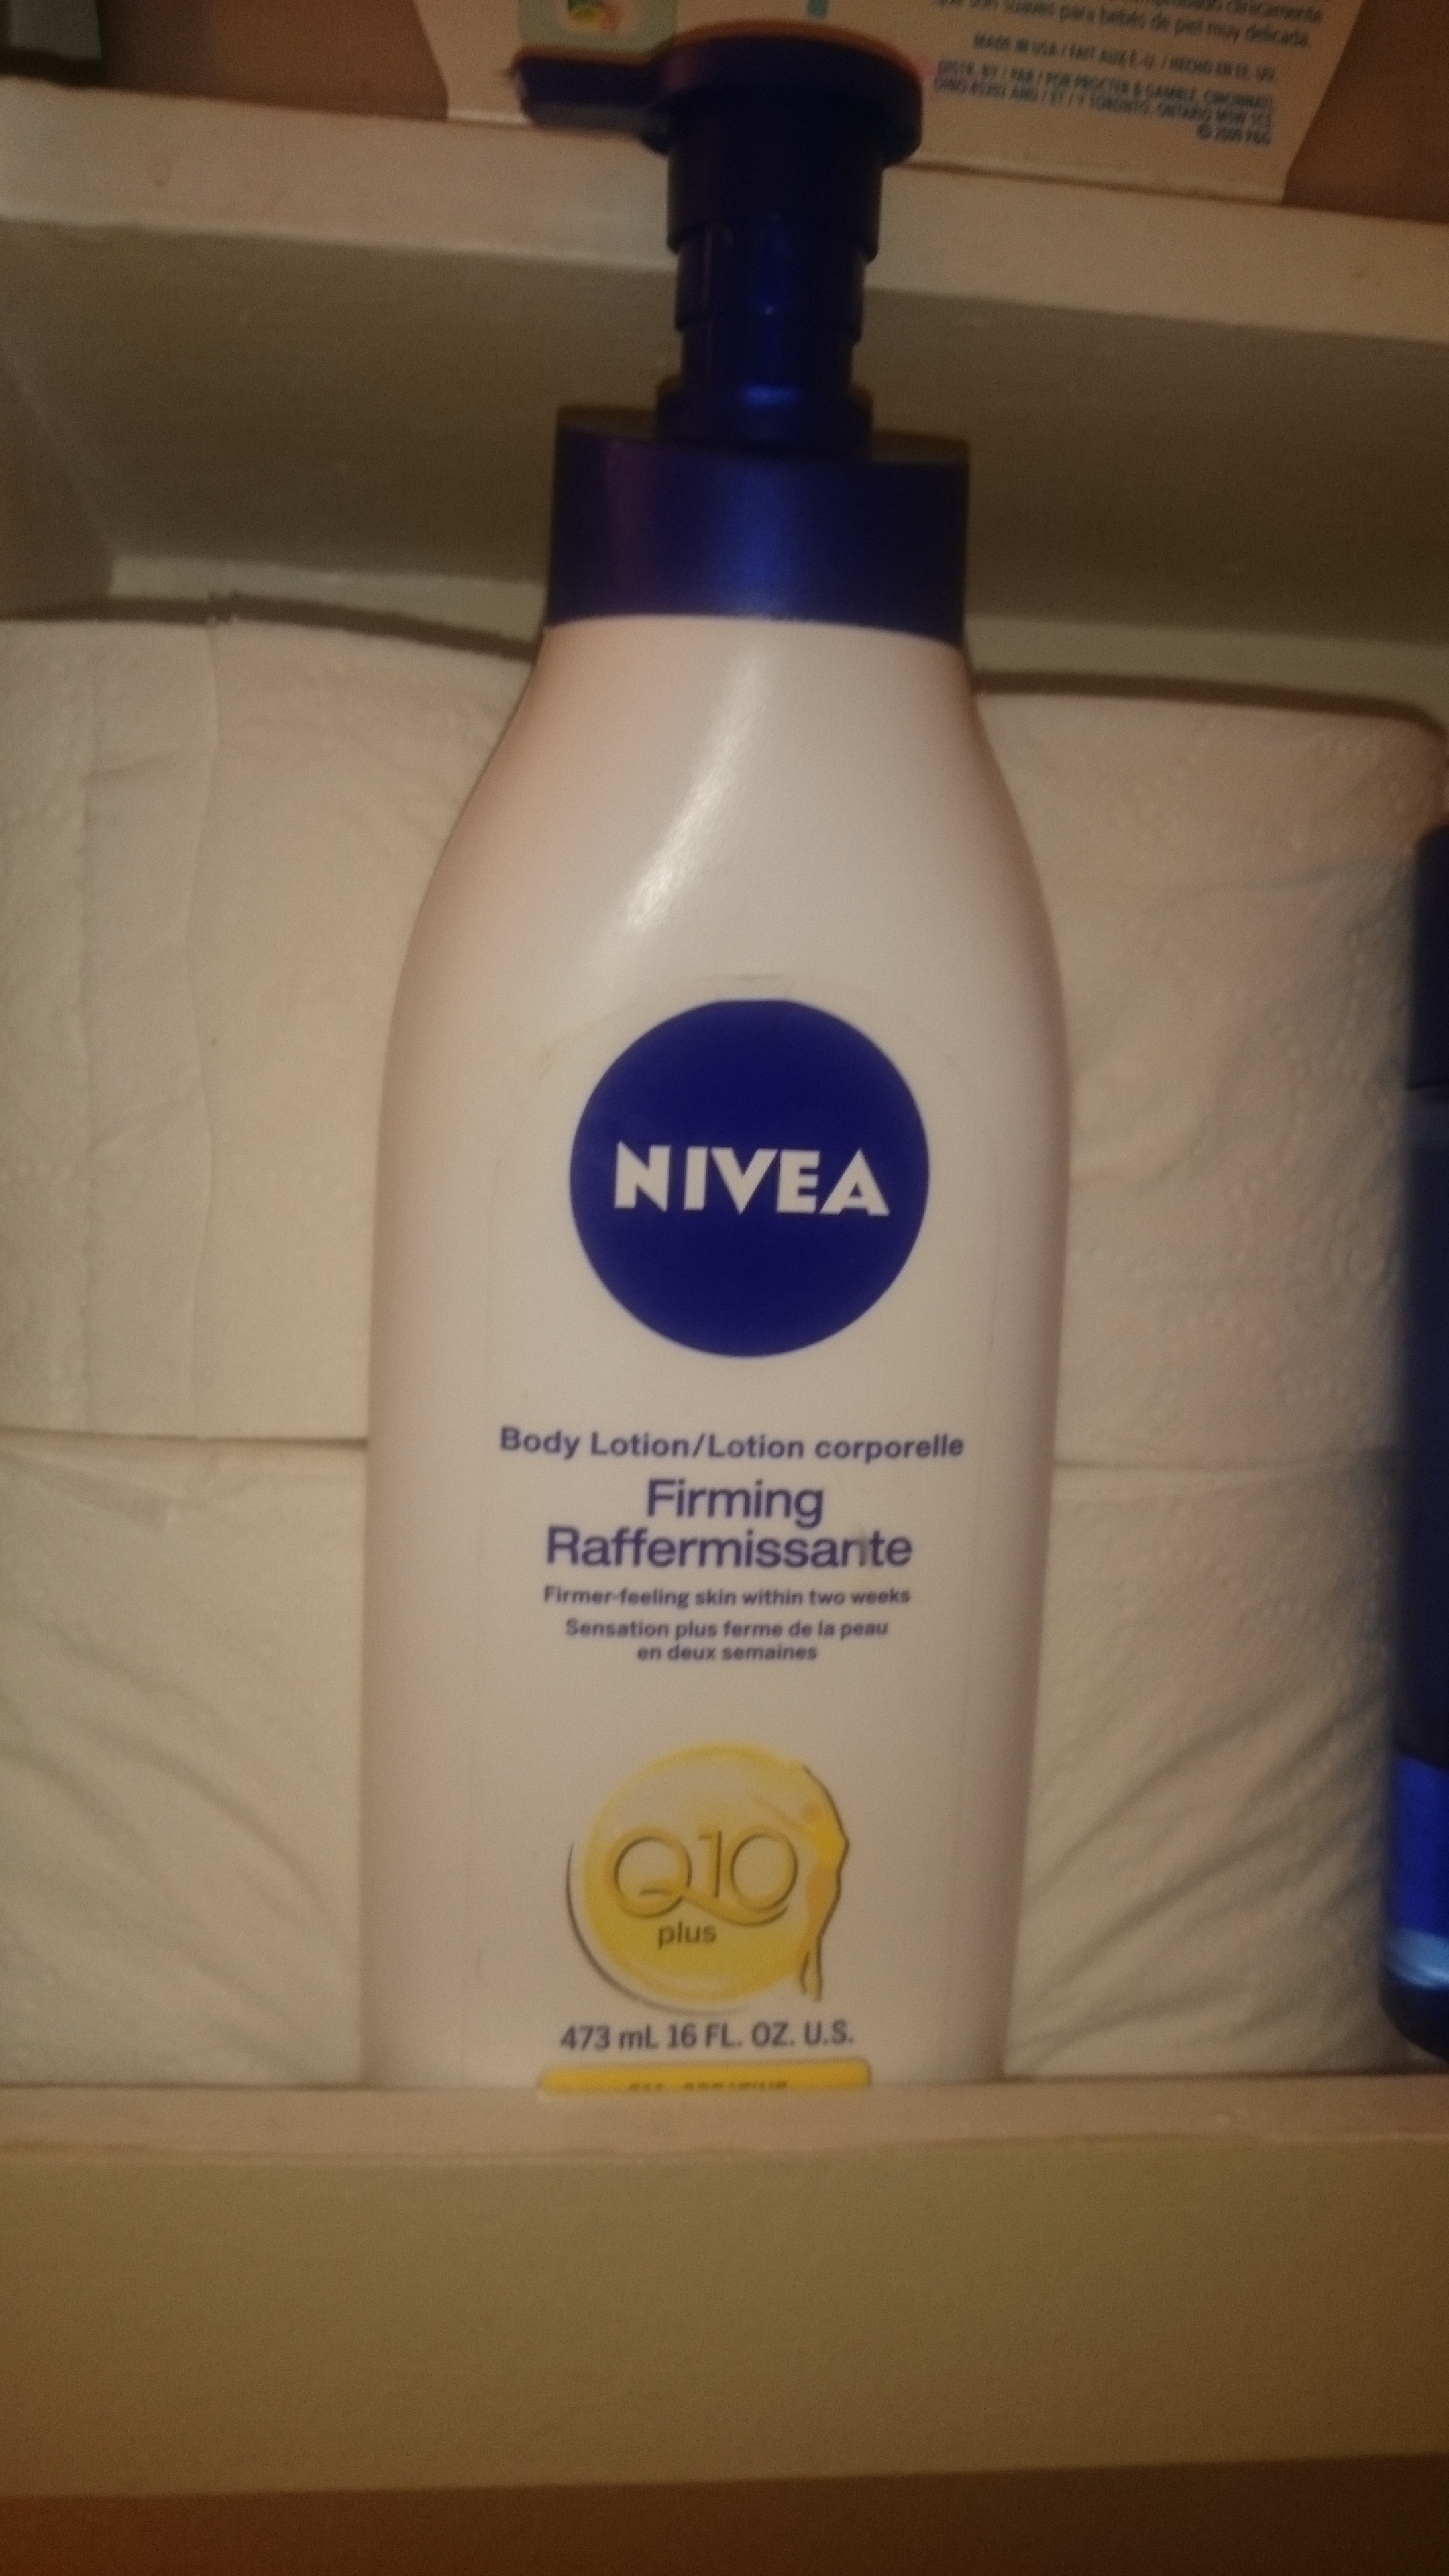 nivea q10 firming body lotion reviews in body lotions. Black Bedroom Furniture Sets. Home Design Ideas